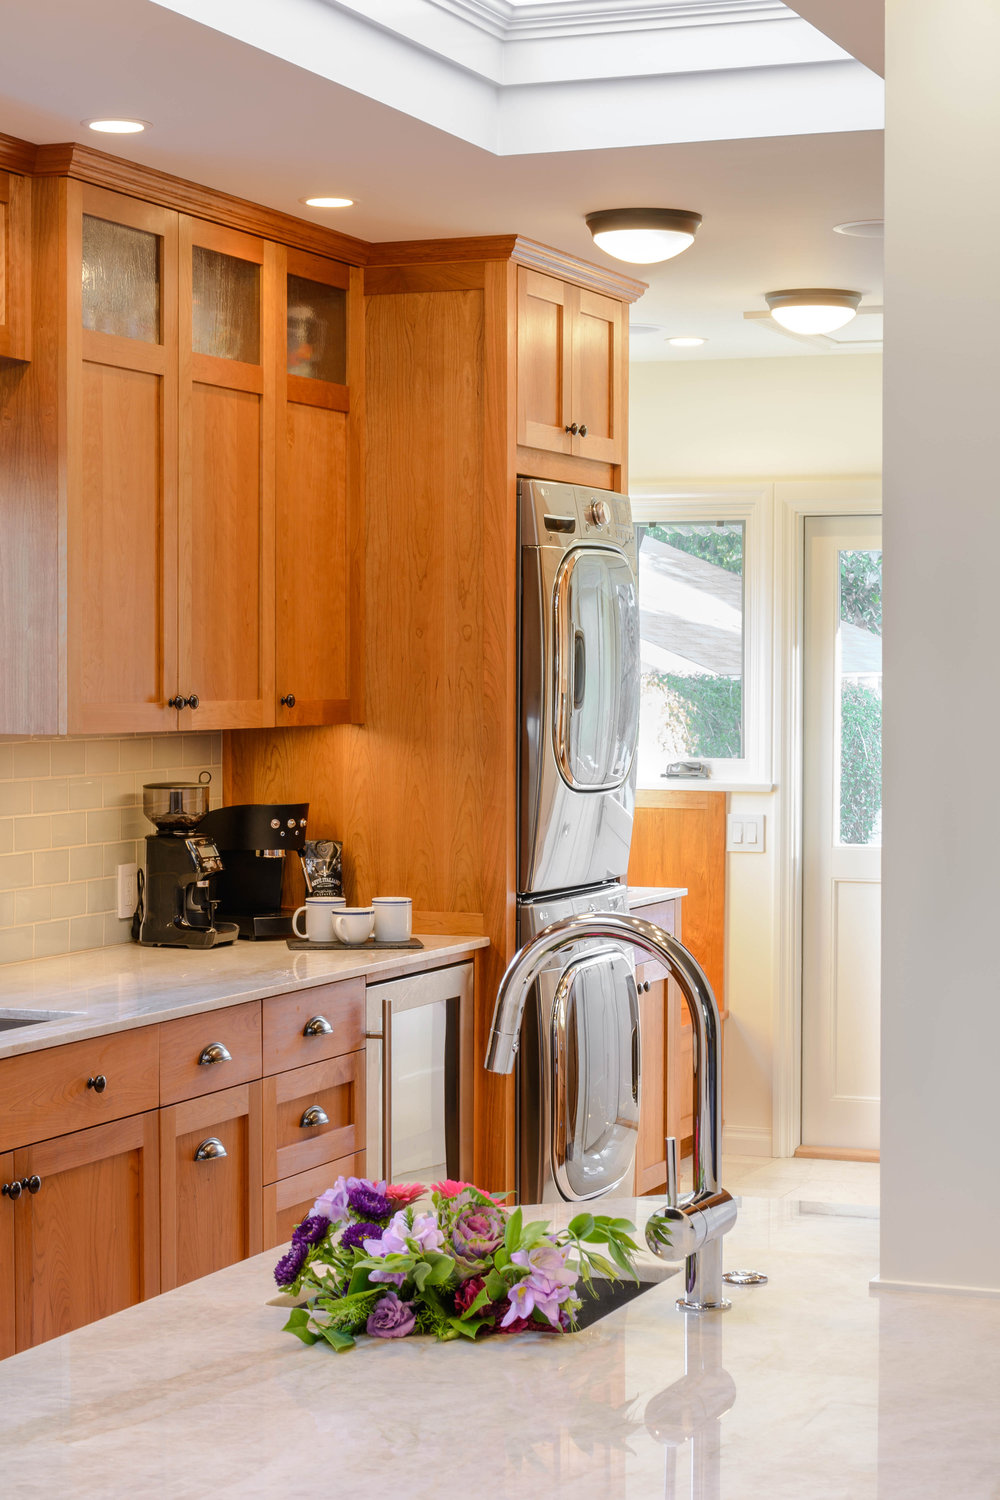 Bright Tudor style kitchen with a mudroom, a built-in washer and dryer, and a peninsula with a prep sink